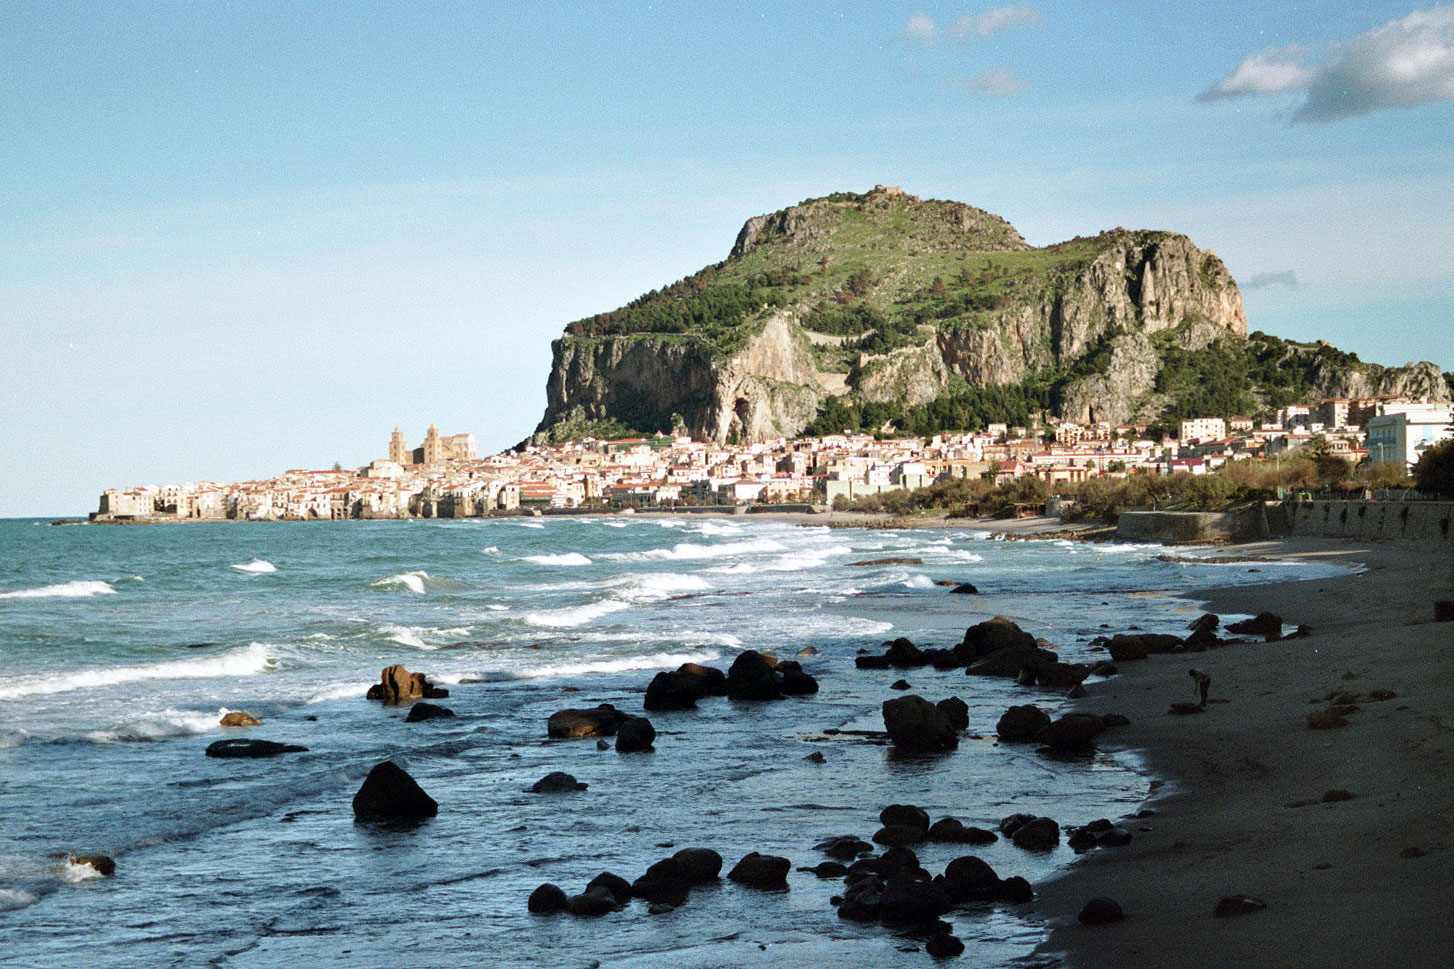 Cefalu Italy  City new picture : Original file ‎ 1,454 × 969 pixels, file size: 425 KB, MIME type ...